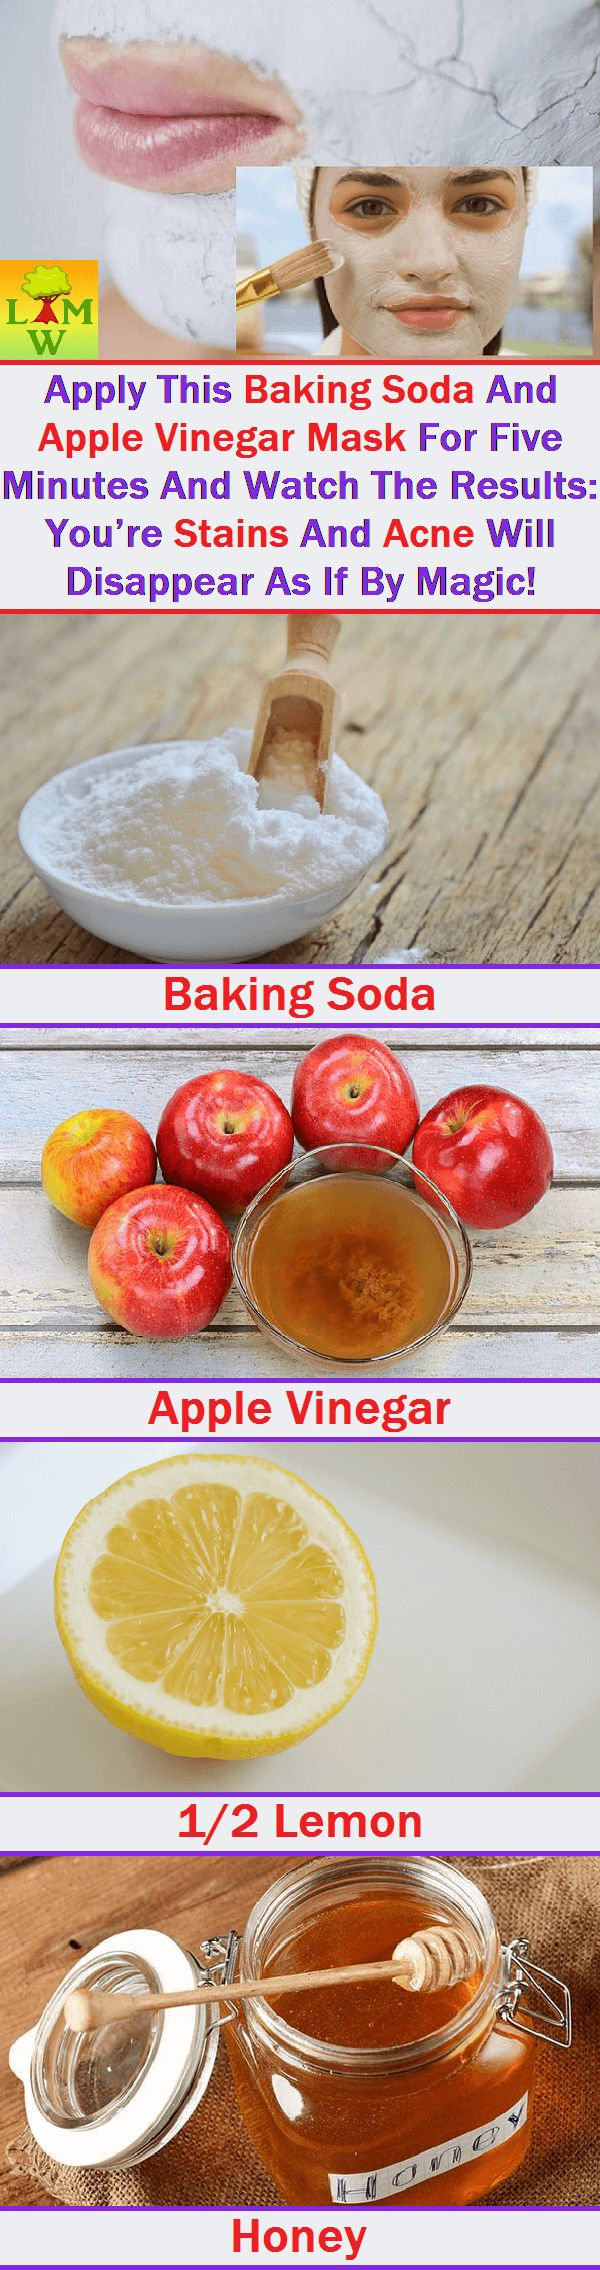 Apply This Baking Soda And Apple Vinegar Mask For 5 Minutes And Watch The Results: You're Stains and Acne Will Disappear As If by a Magic